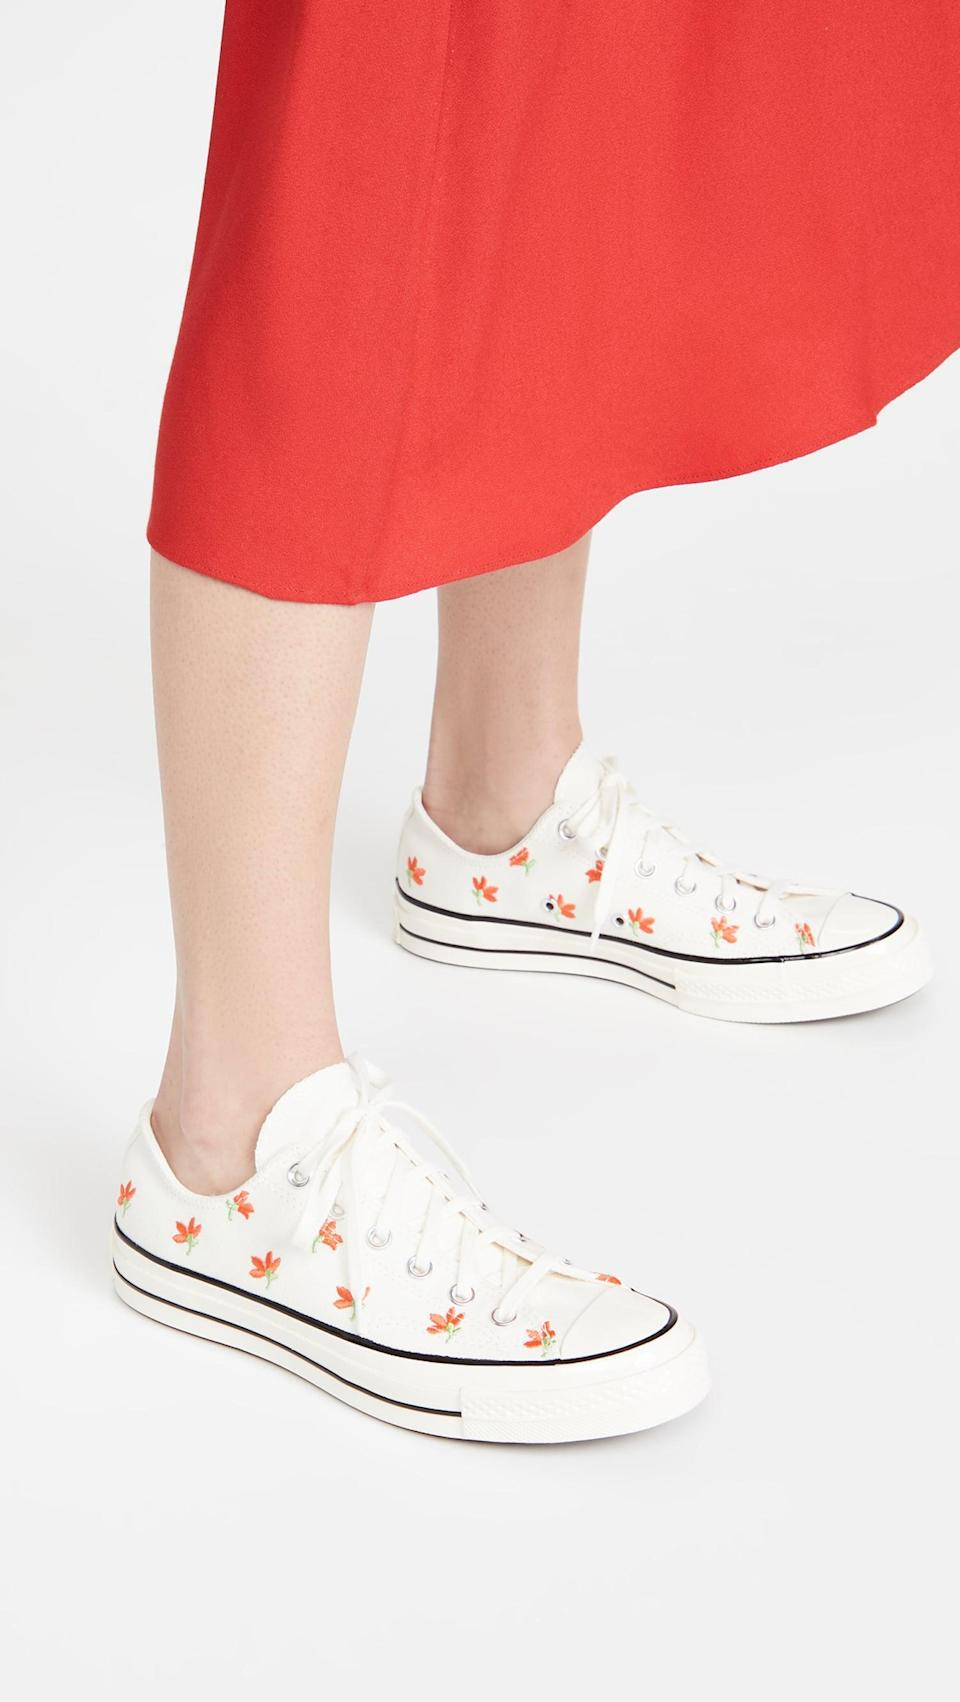 """<p><span>Converse Chuck 70 Embroidered Garden Party Sneakers</span> ($85)</p> <p>""""I'm a sucker for florals, so these fun kicks instantly caught my attention. How can you resist the fun springtime vibe?"""" - Macy Cate Williams, senior editor, Shop</p>"""